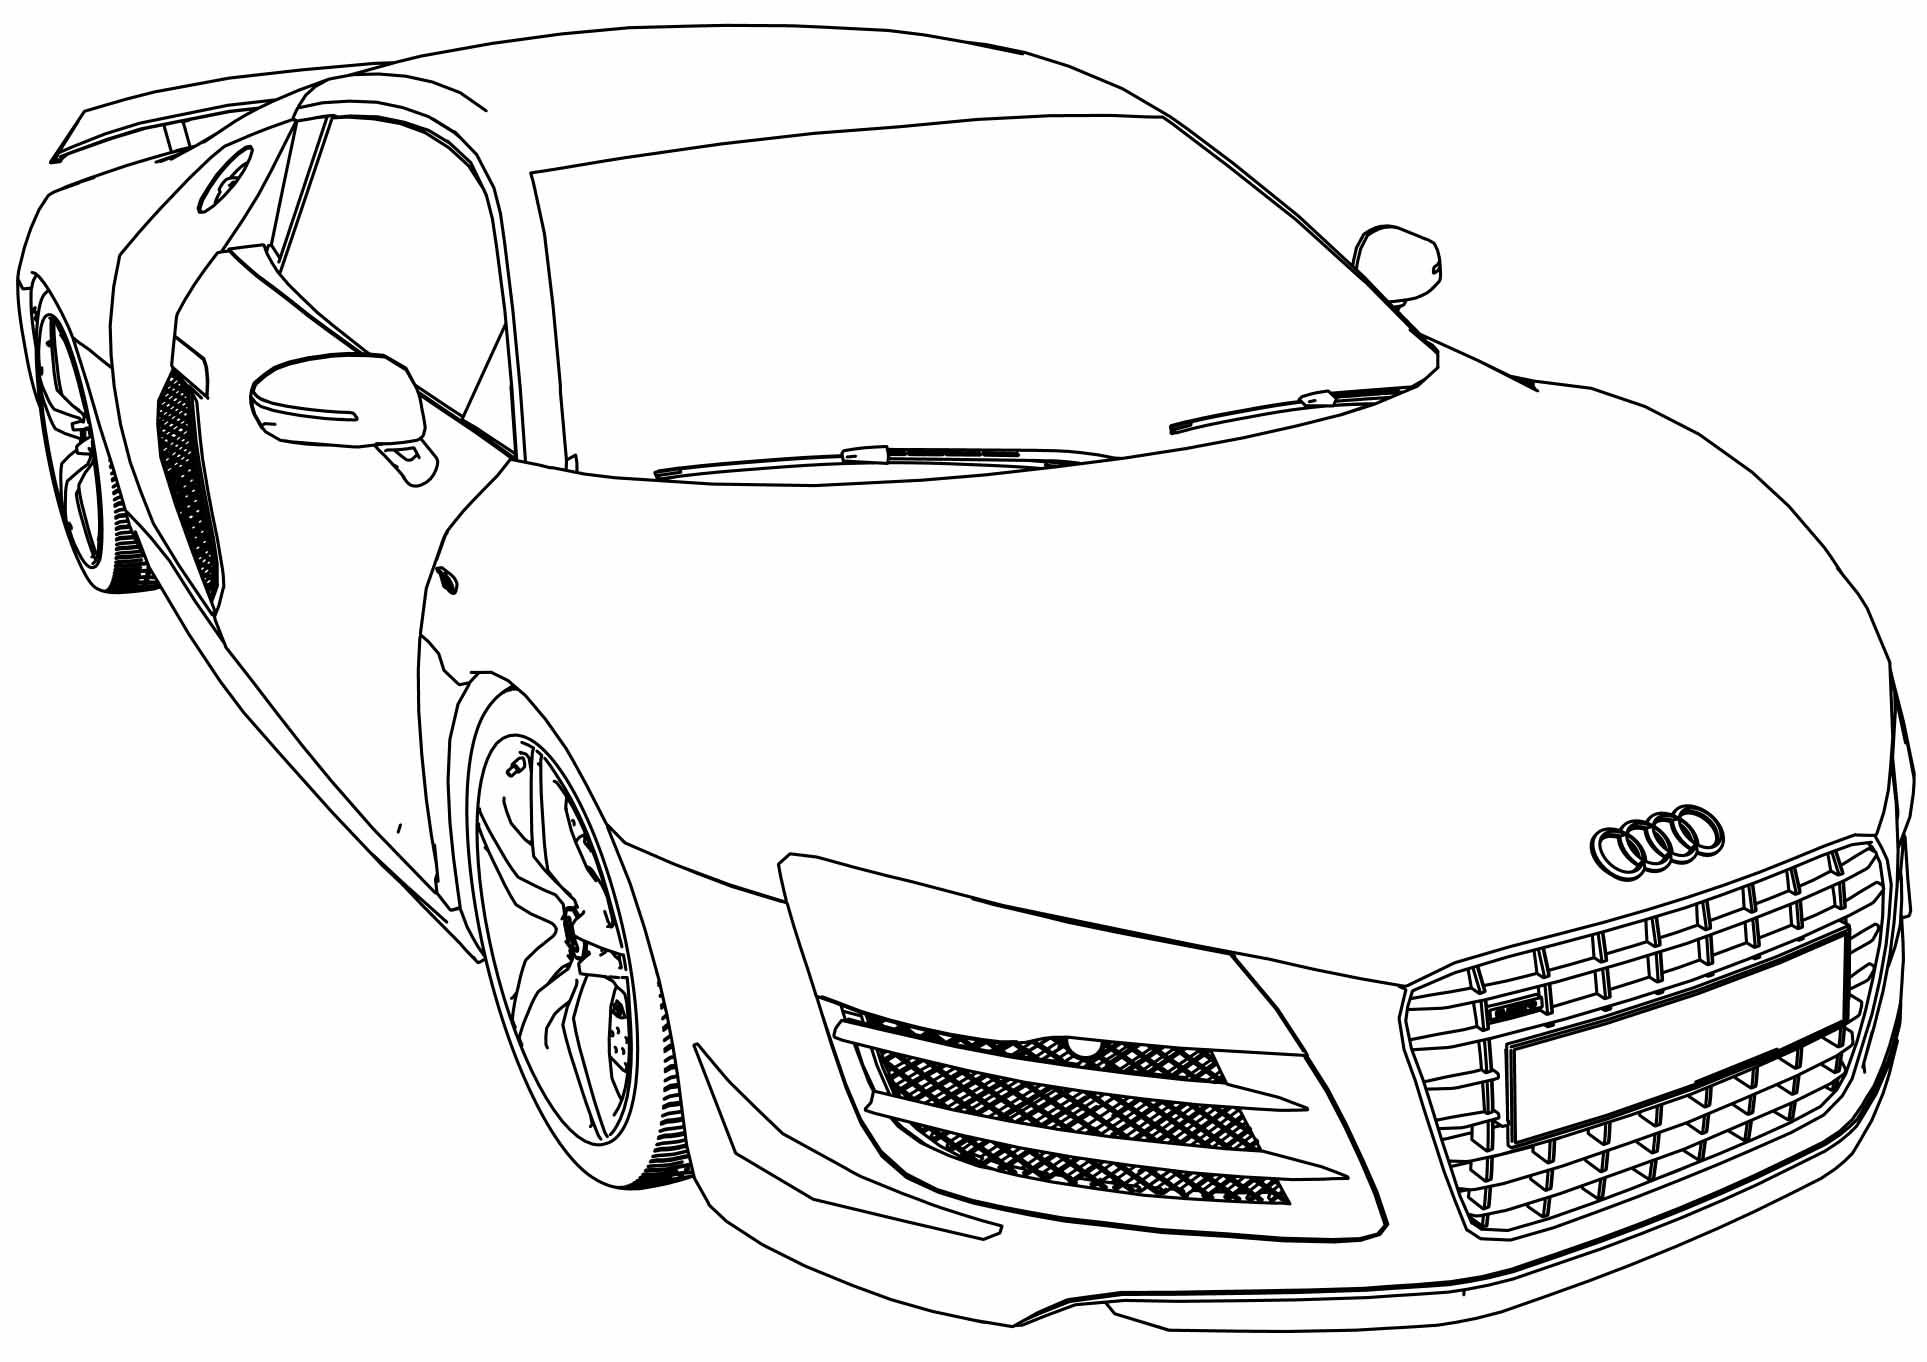 audi coloring audi coloring download audi coloring for free 2019 coloring audi